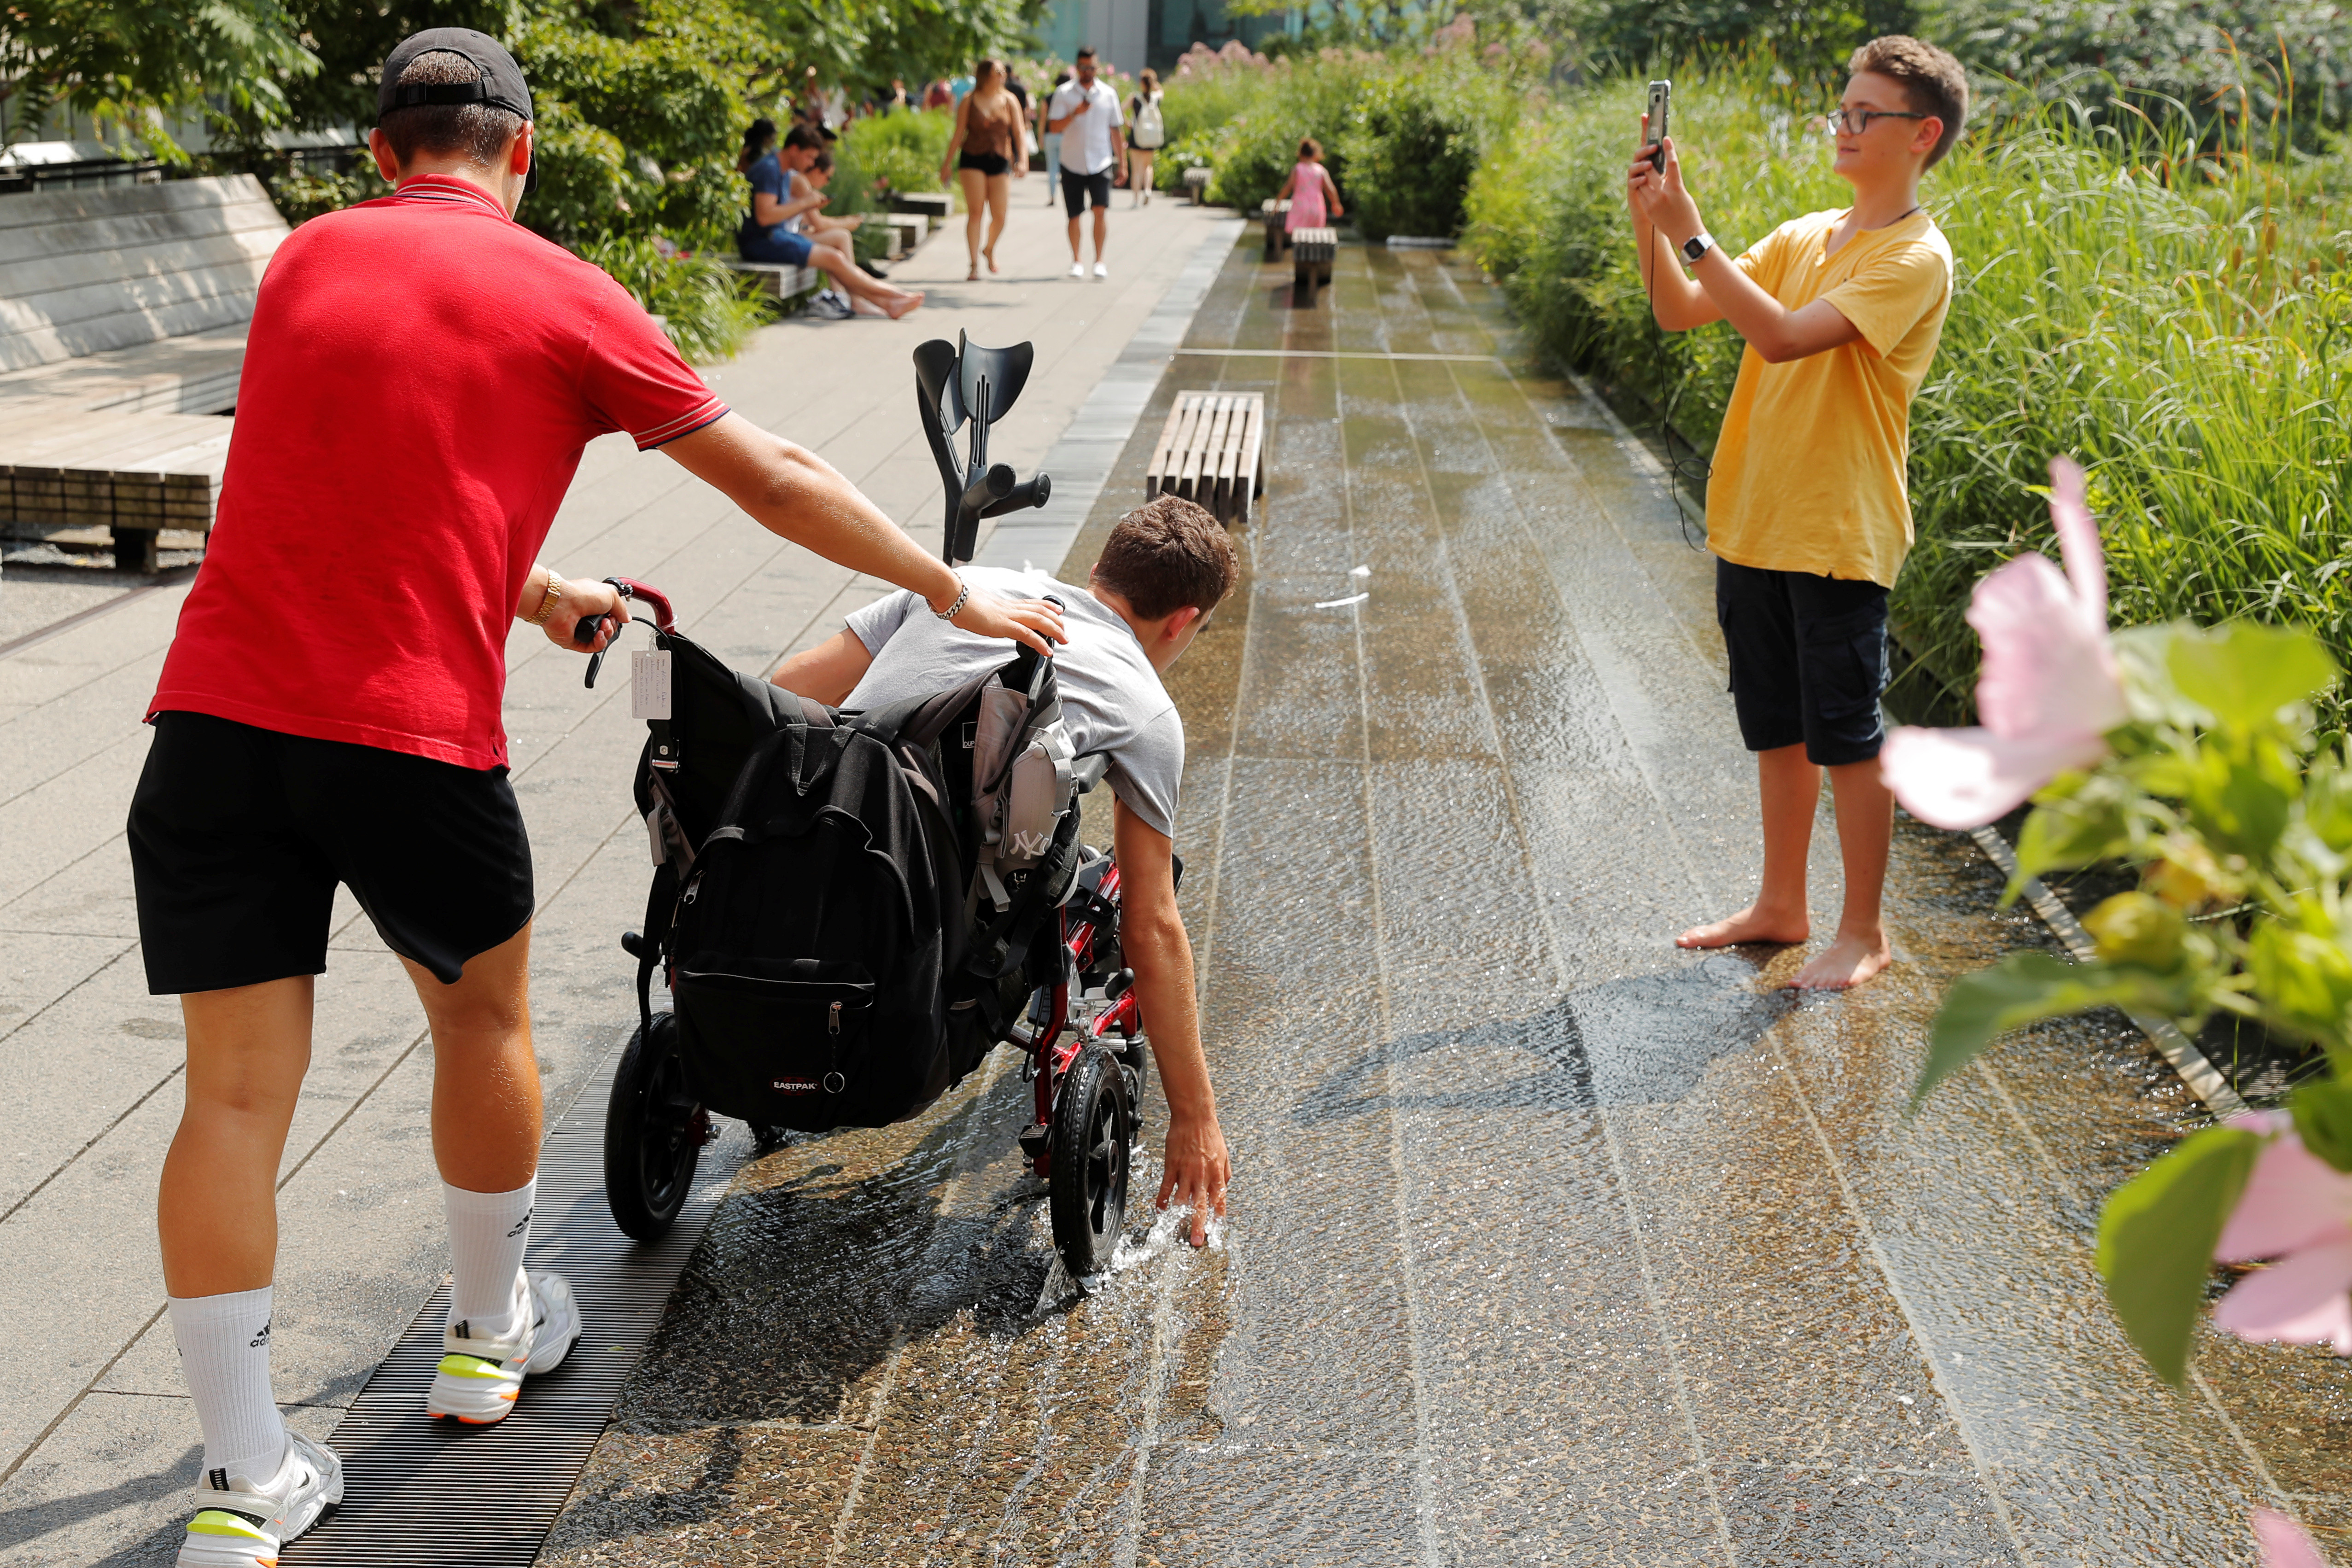 A man in a wheelchair reaches down to touch a water feature in High Line Park during a period of high temperatures in the Manhattan borough of New York City, New York, U.S., July 19, 2019. REUTERS/Lucas Jackson - RC1F35C86D60